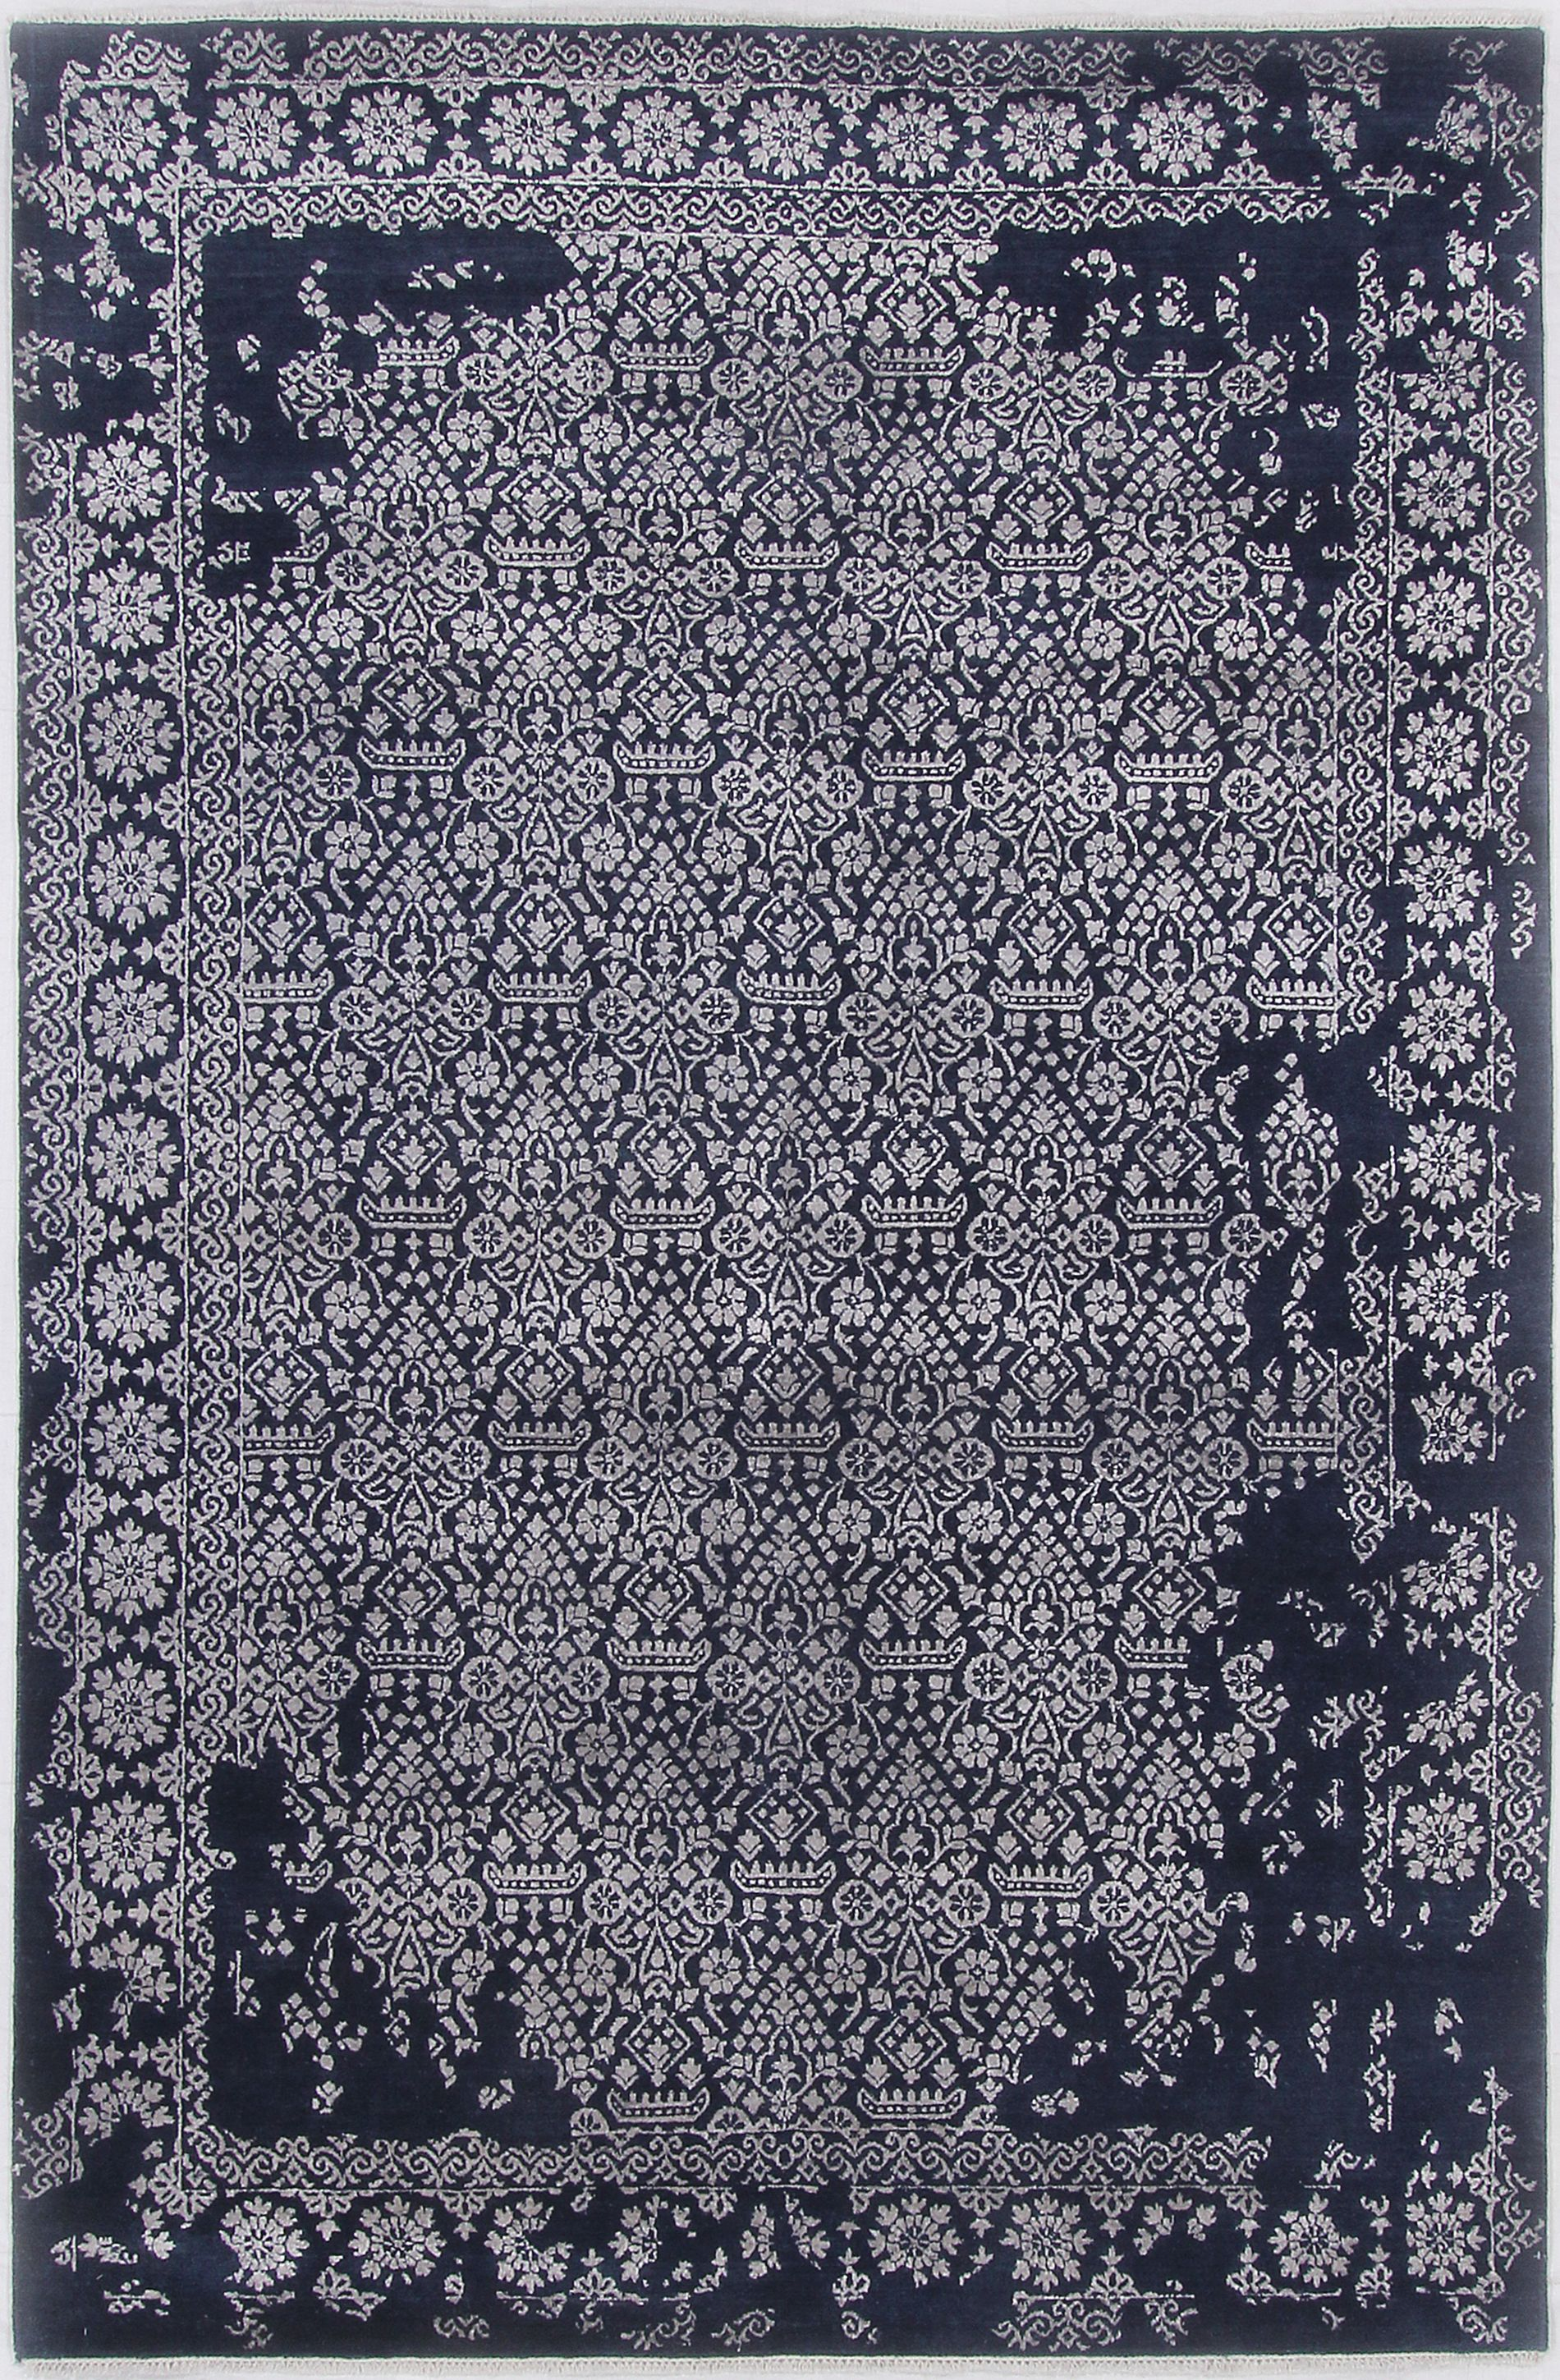 36538 Contemporary Indian Rugs Indian Rugs Buying Ca